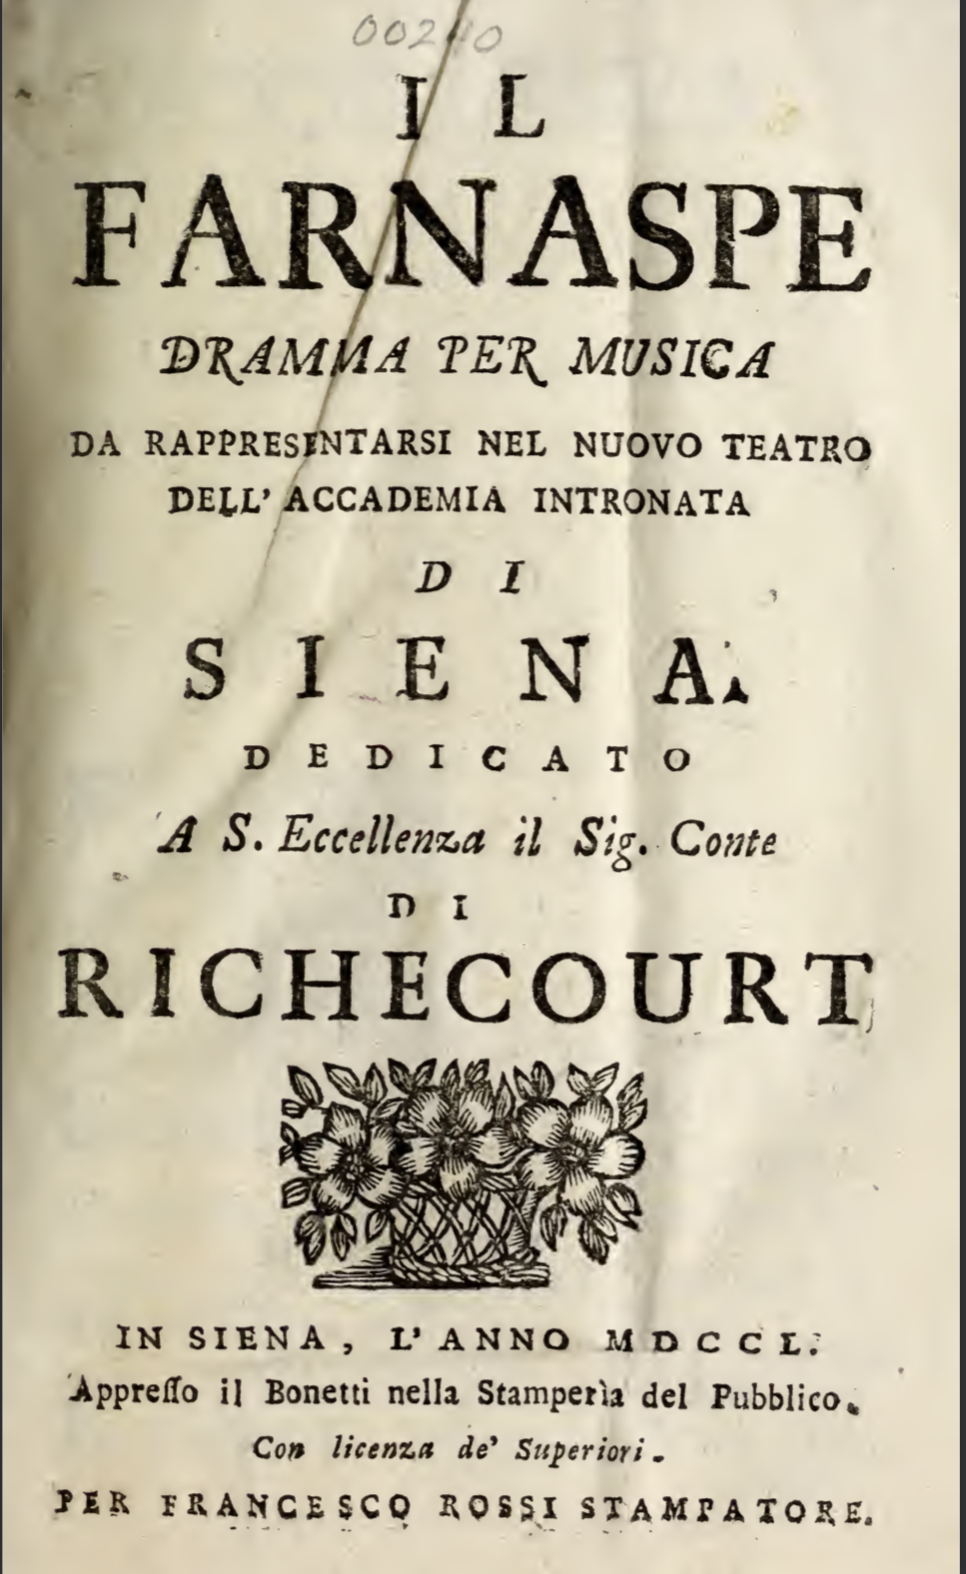 """A Tenor's """"Voice"""" on the Periphery: Cesare Grandi and the Siena Production of Farnaspe (1750) title="""